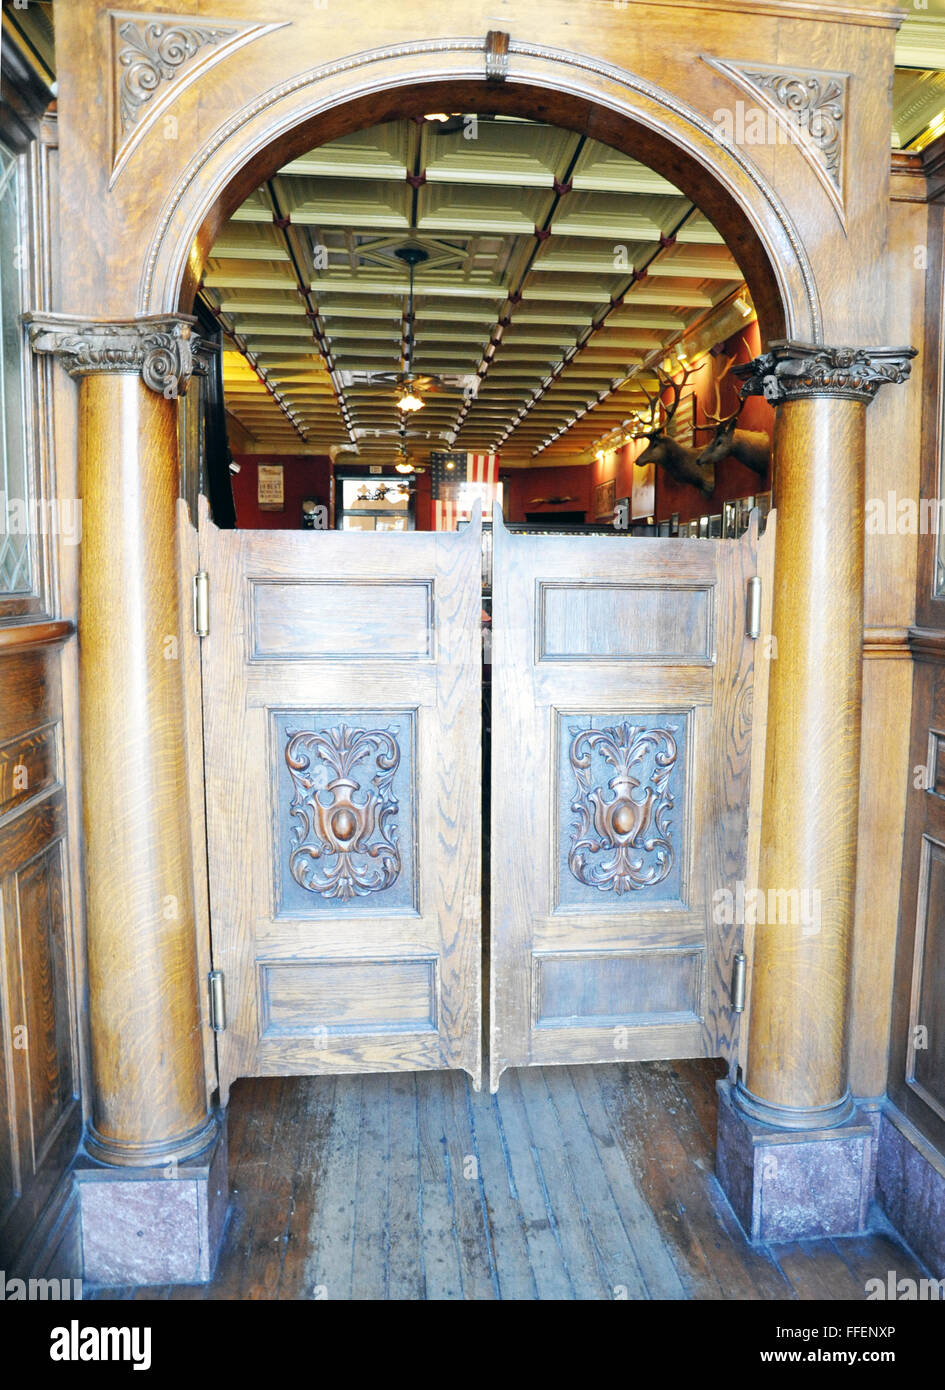 Bar Swinging Doors Jerome Arizona.Found Richest Copper Mines Ever In Jerome Between Sedona And PrescottCopper Gold Silver Mine & Swinging Doors Bar u0026 Double Arch Poplar White Swinging Cafe Doors pezcame.com